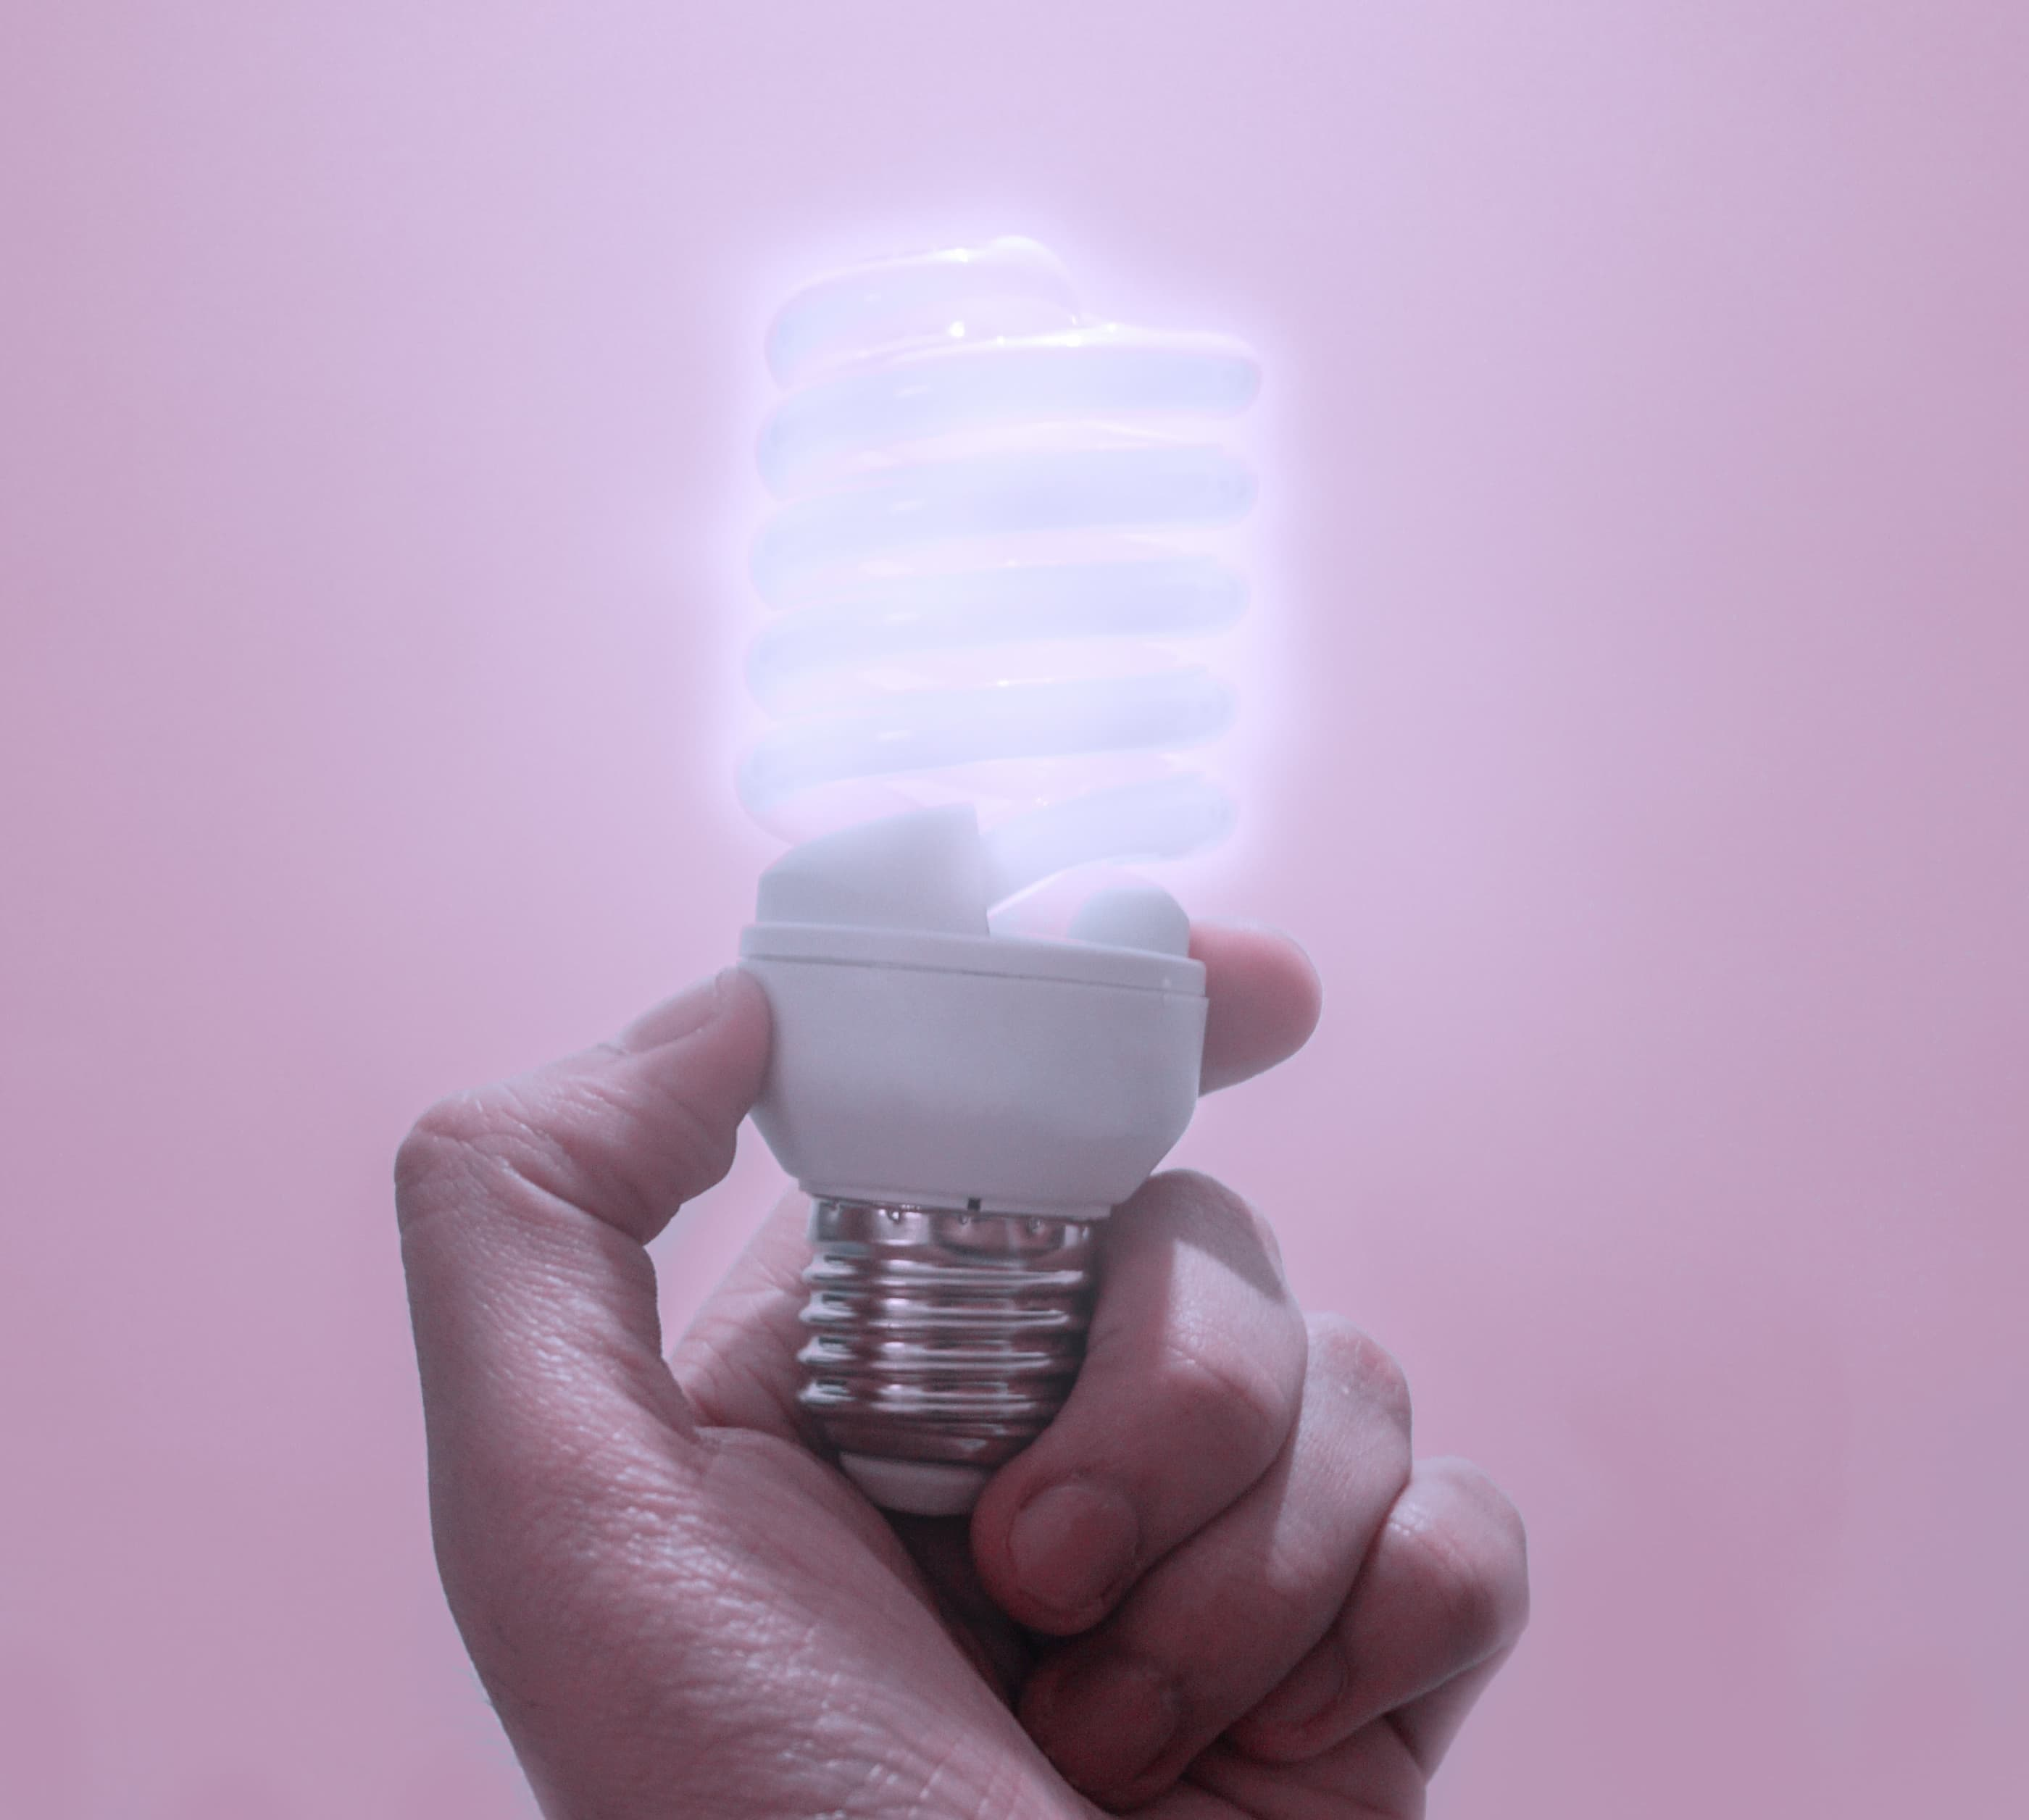 Closeup of hand holding eco-conscious LED light against soft pink background